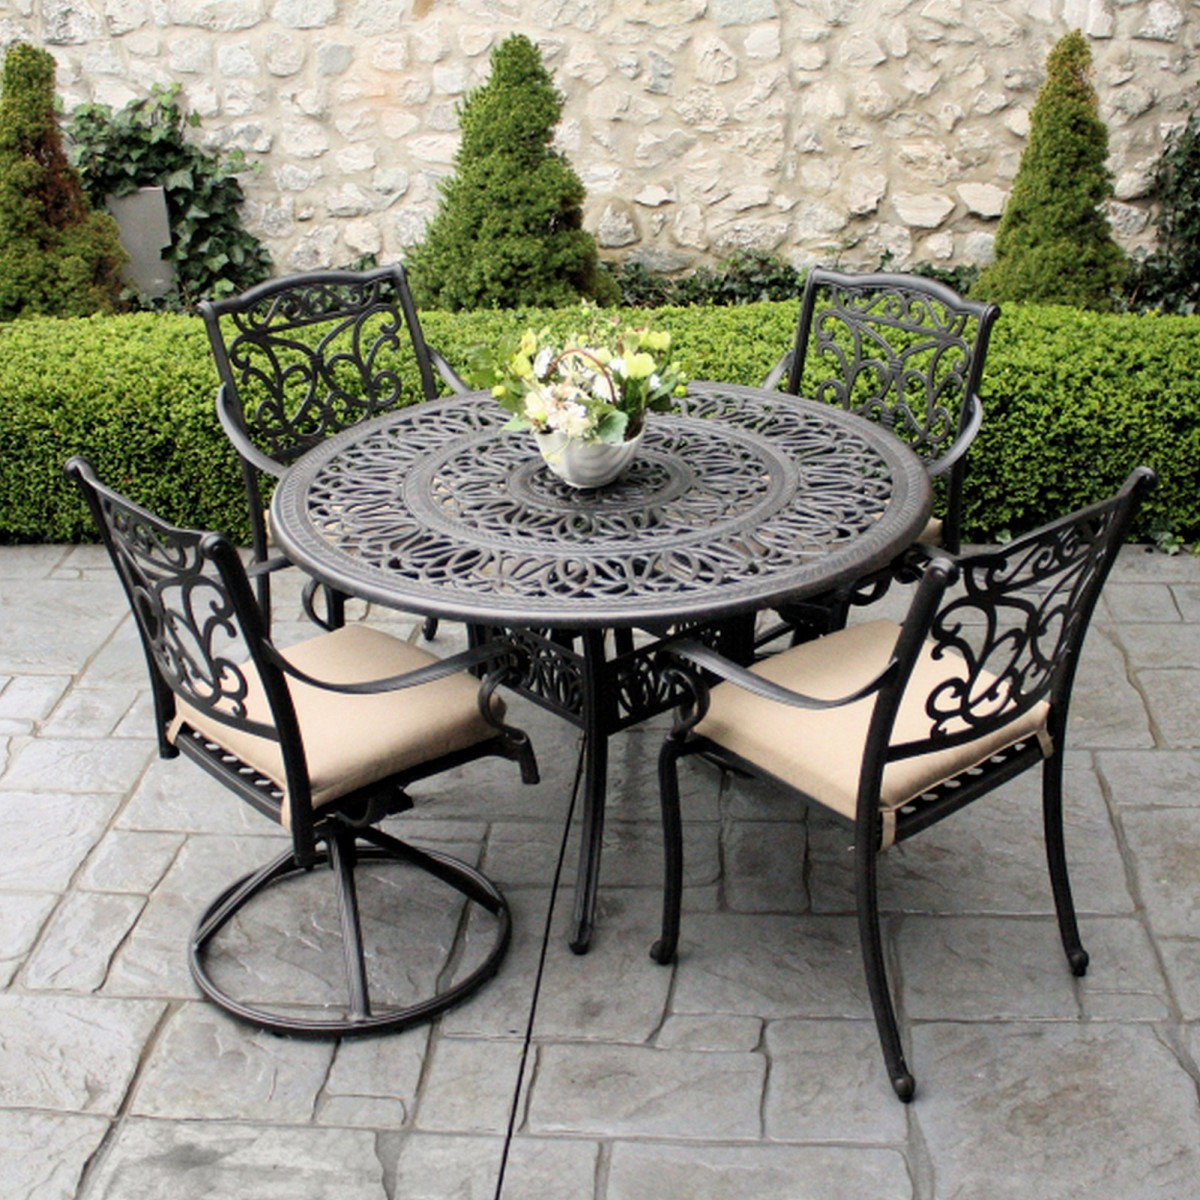 wrought iron patio furniture gorgeous rod iron patio furniture exterior design images wrought iron patio YZBWHPZ